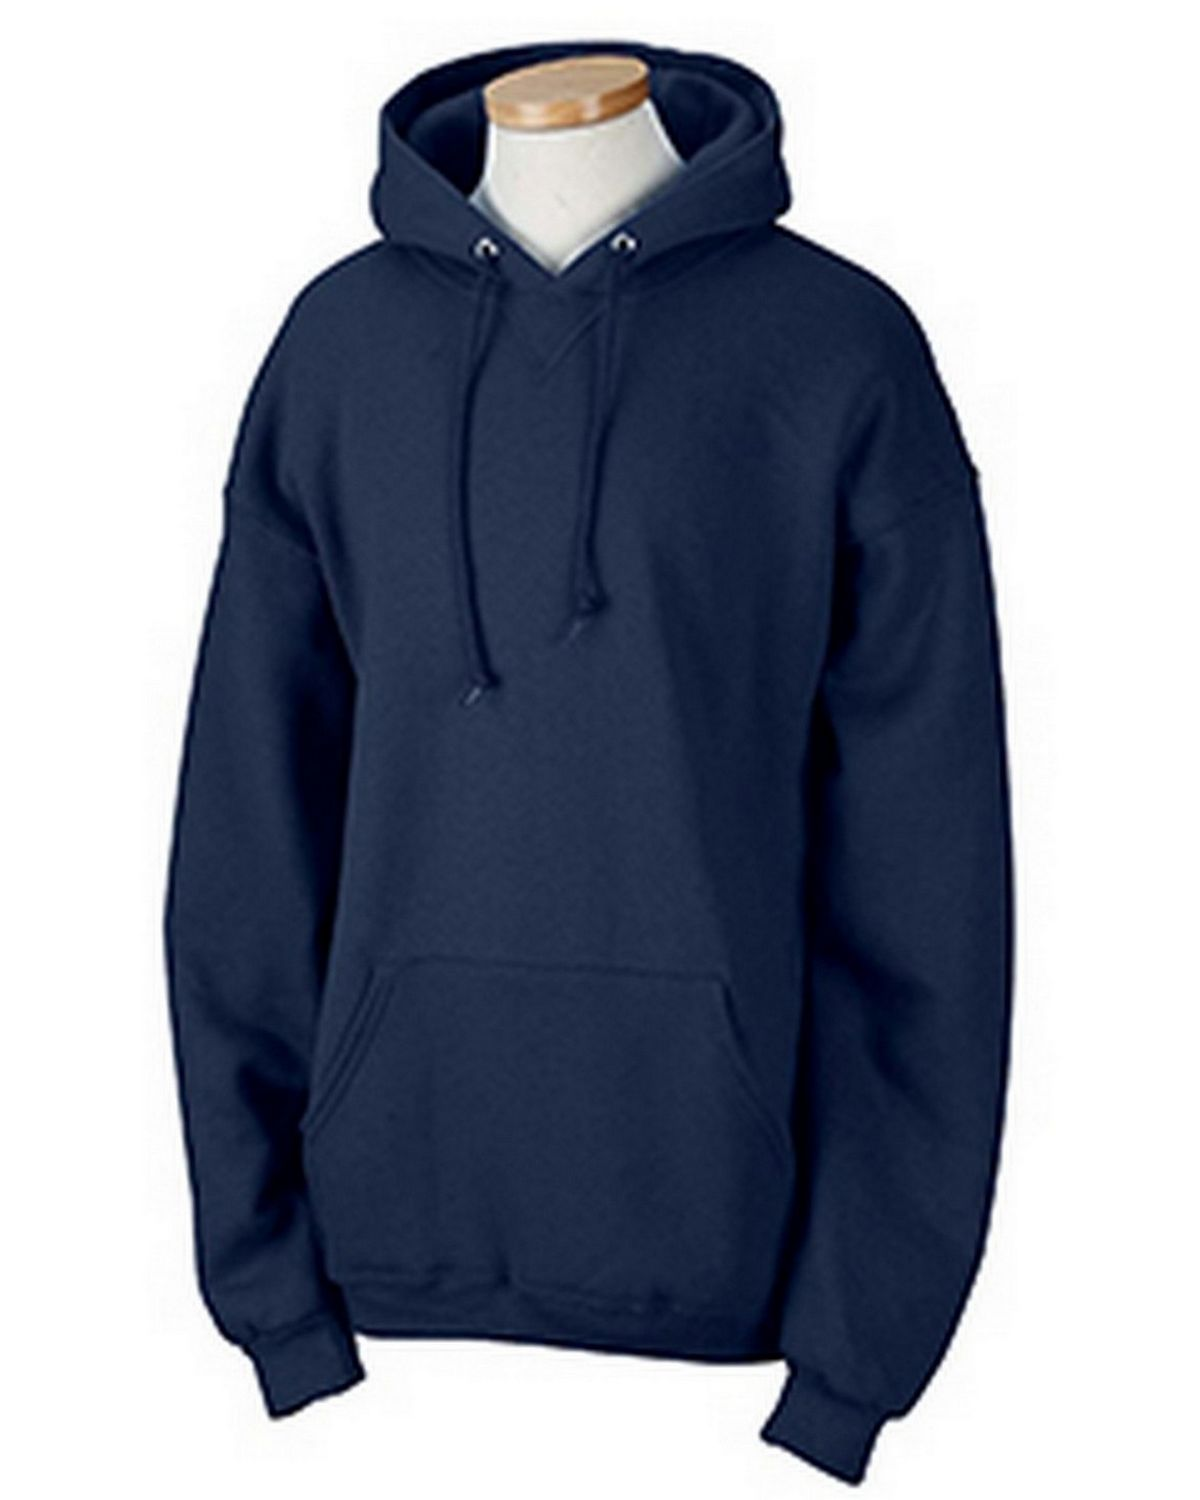 Russell Athletic Mens Dri-Power Fleece Hoodies